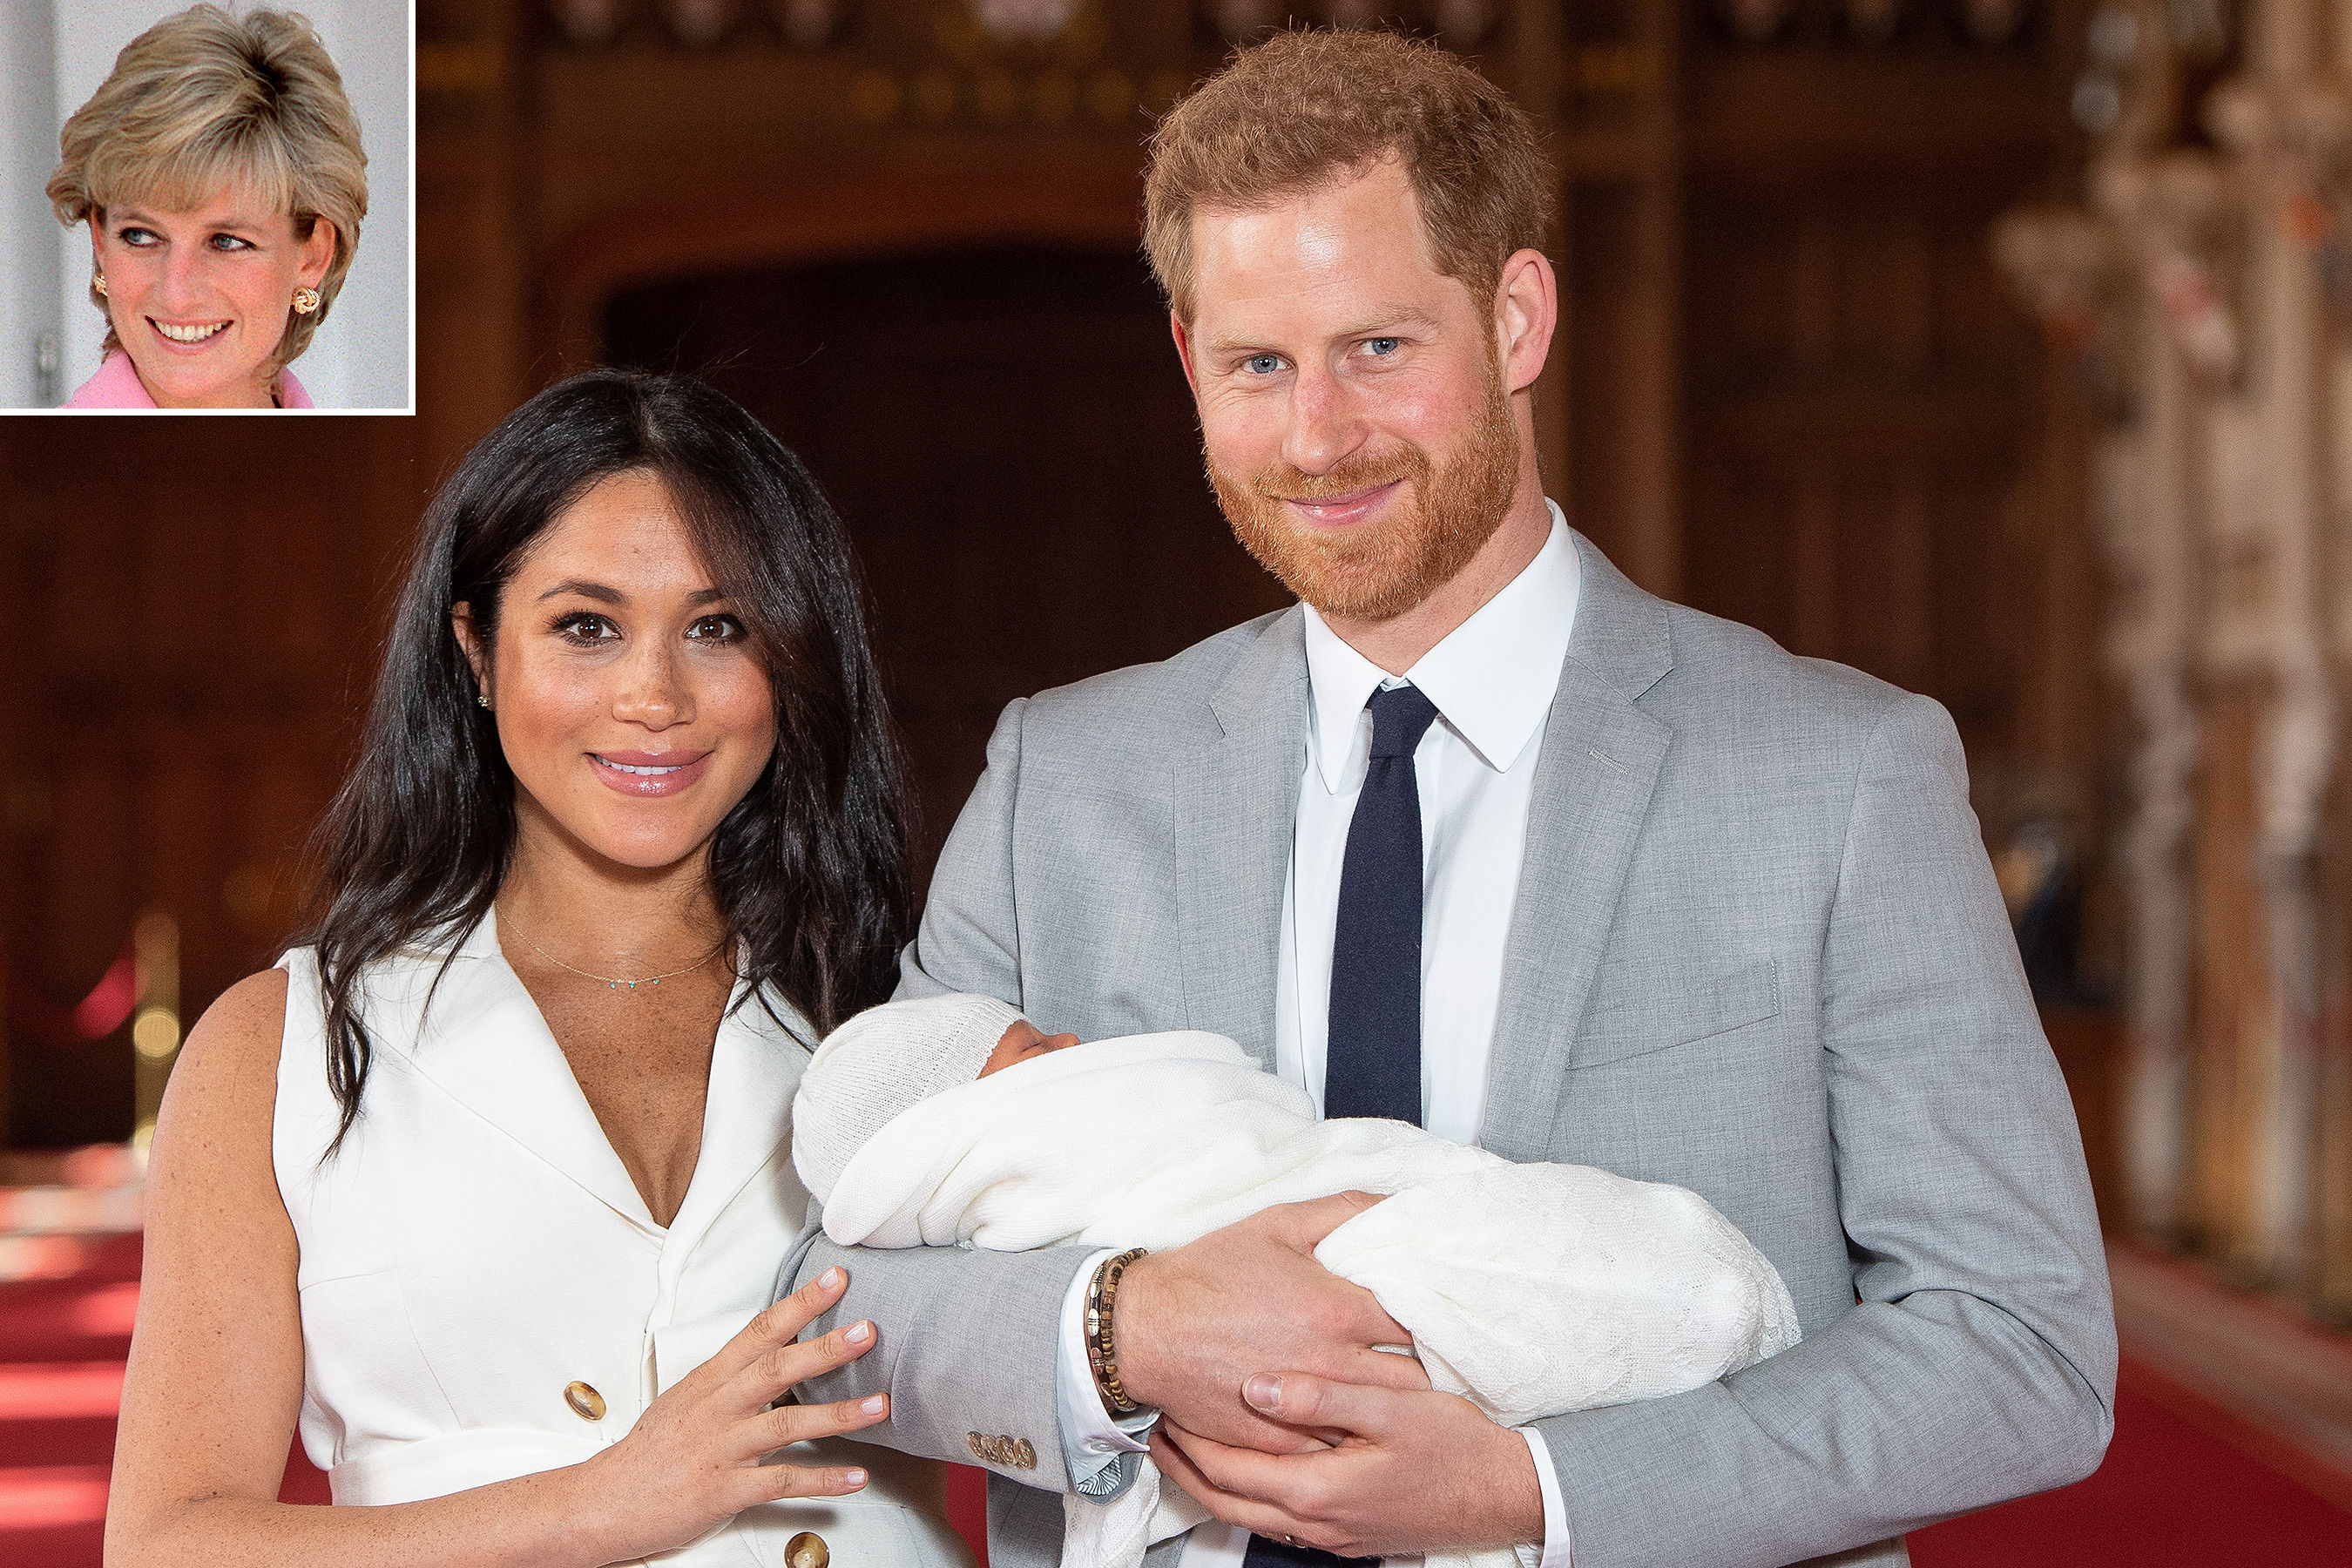 Did Meghan Markle and Prince Harry Find a Way to Honor Princess Diana with Baby Archie's Name?